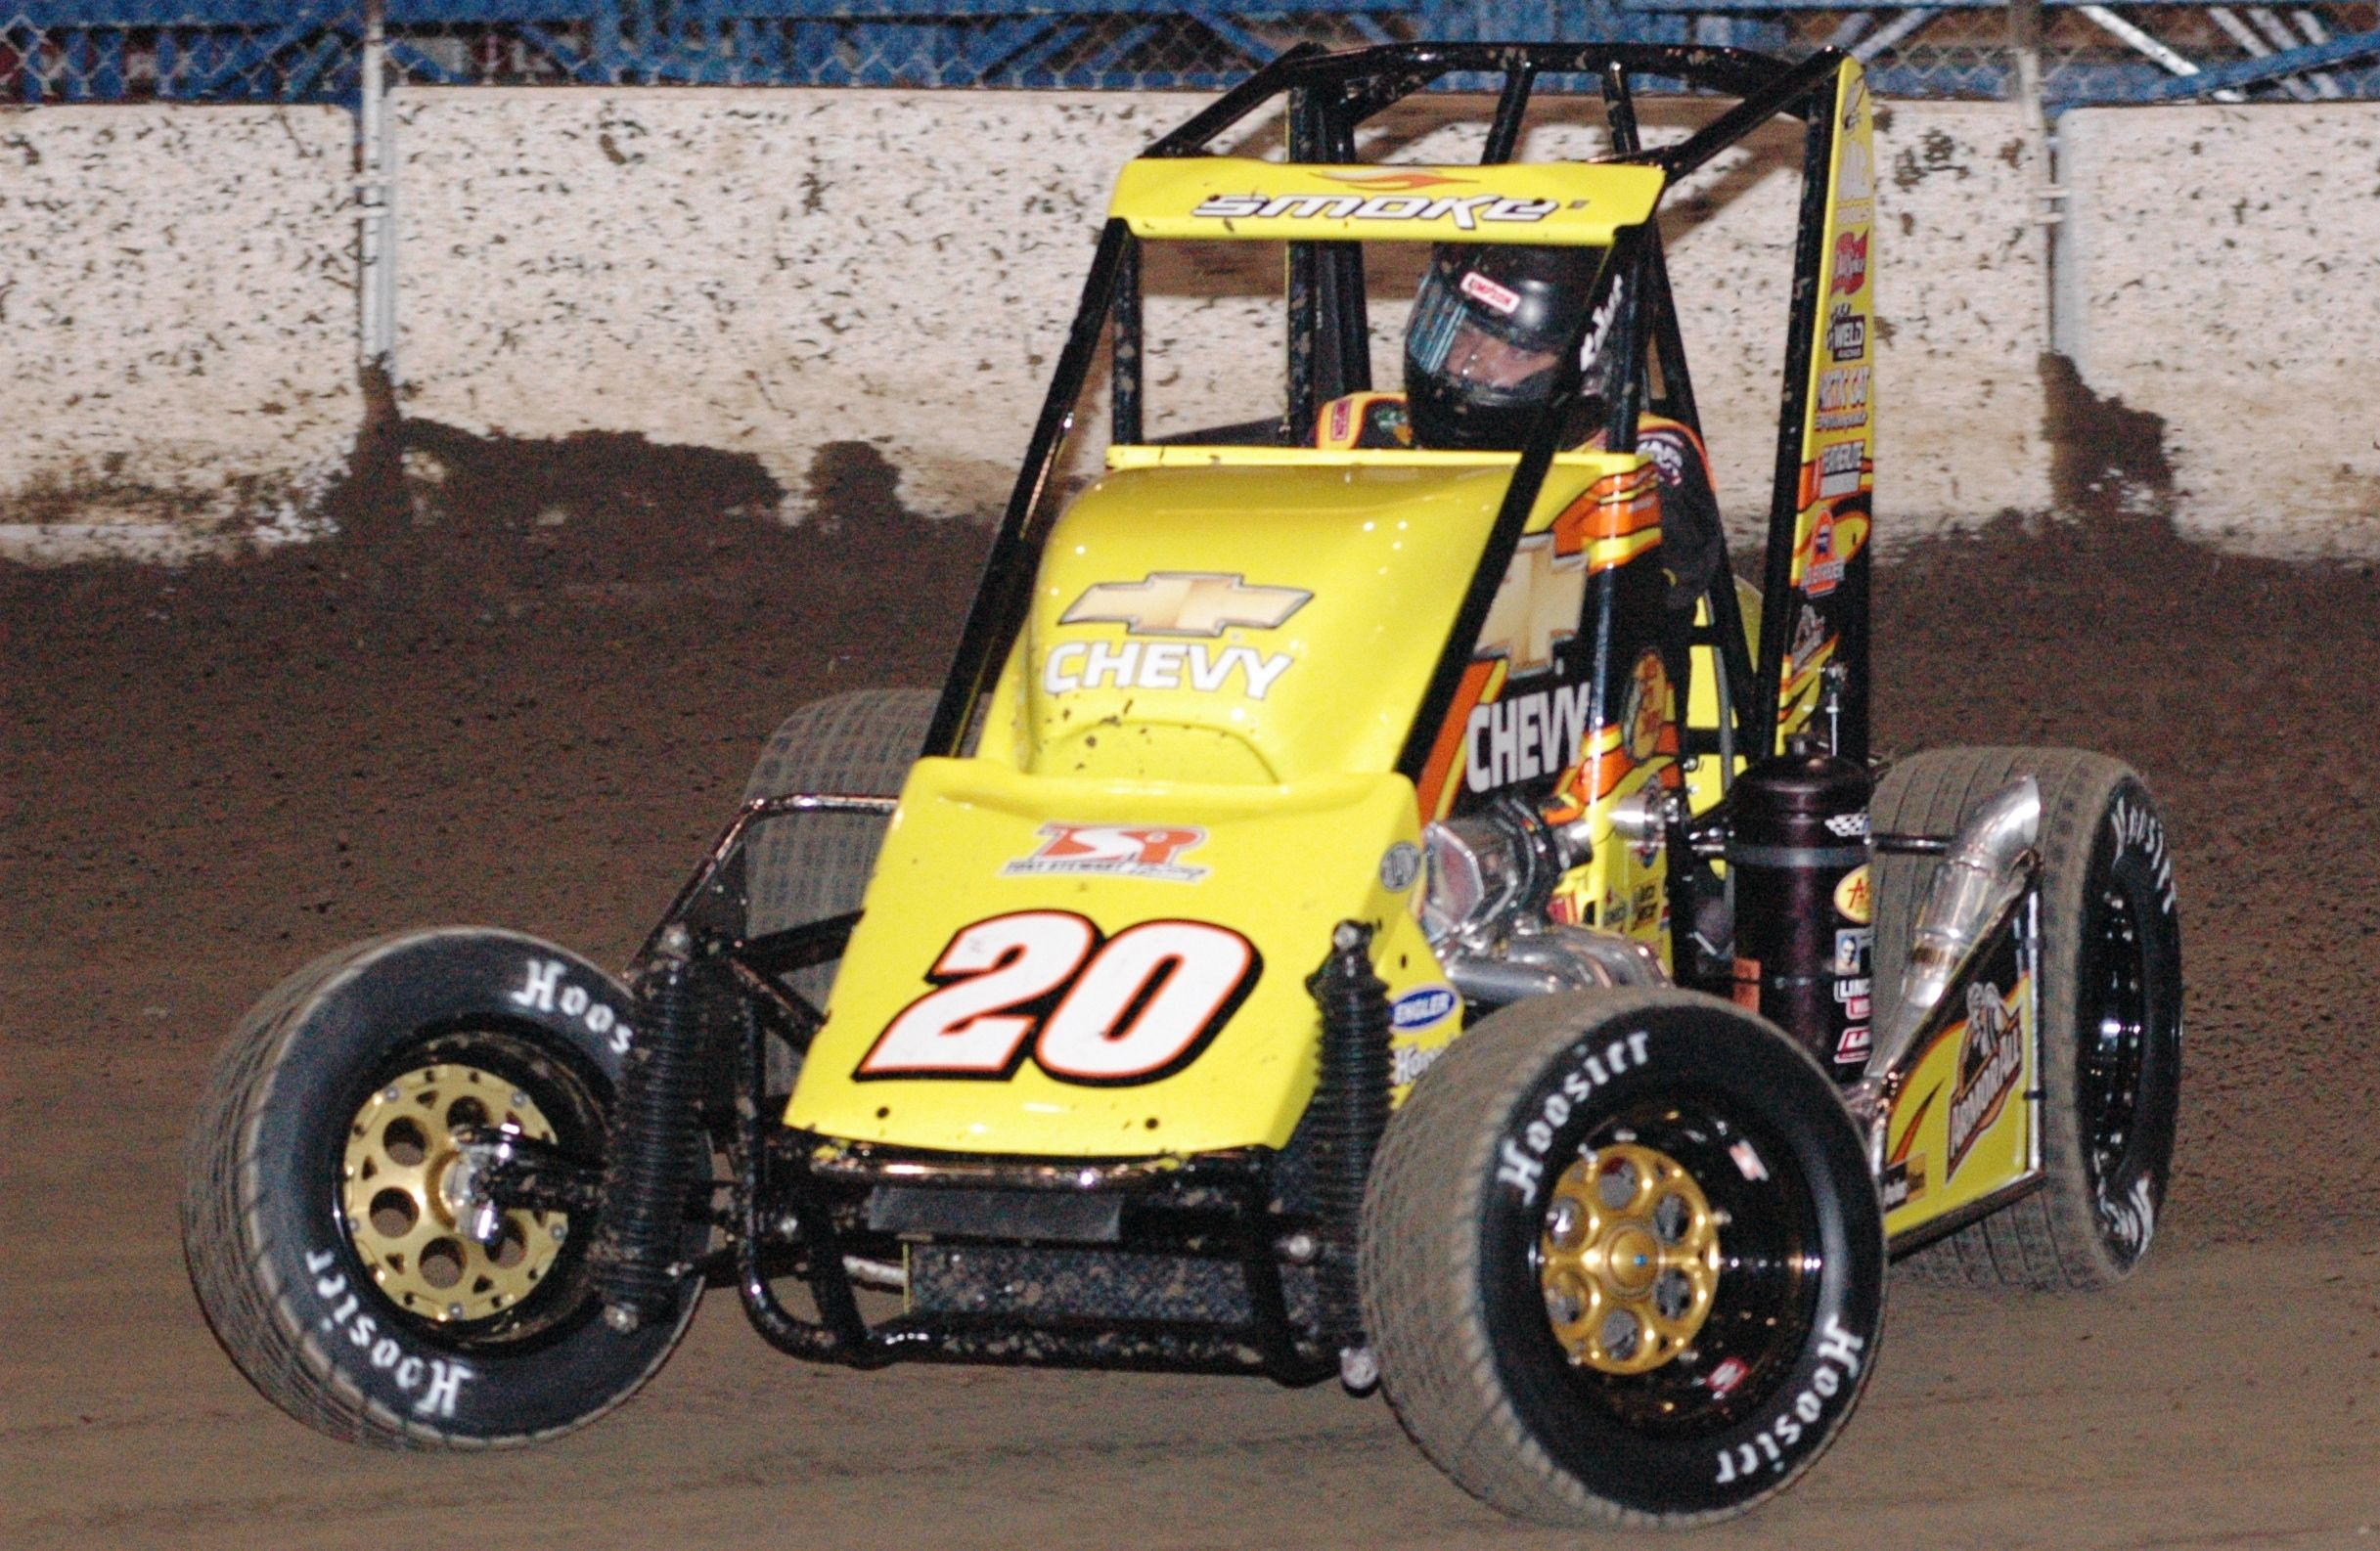 Midget racing pictures